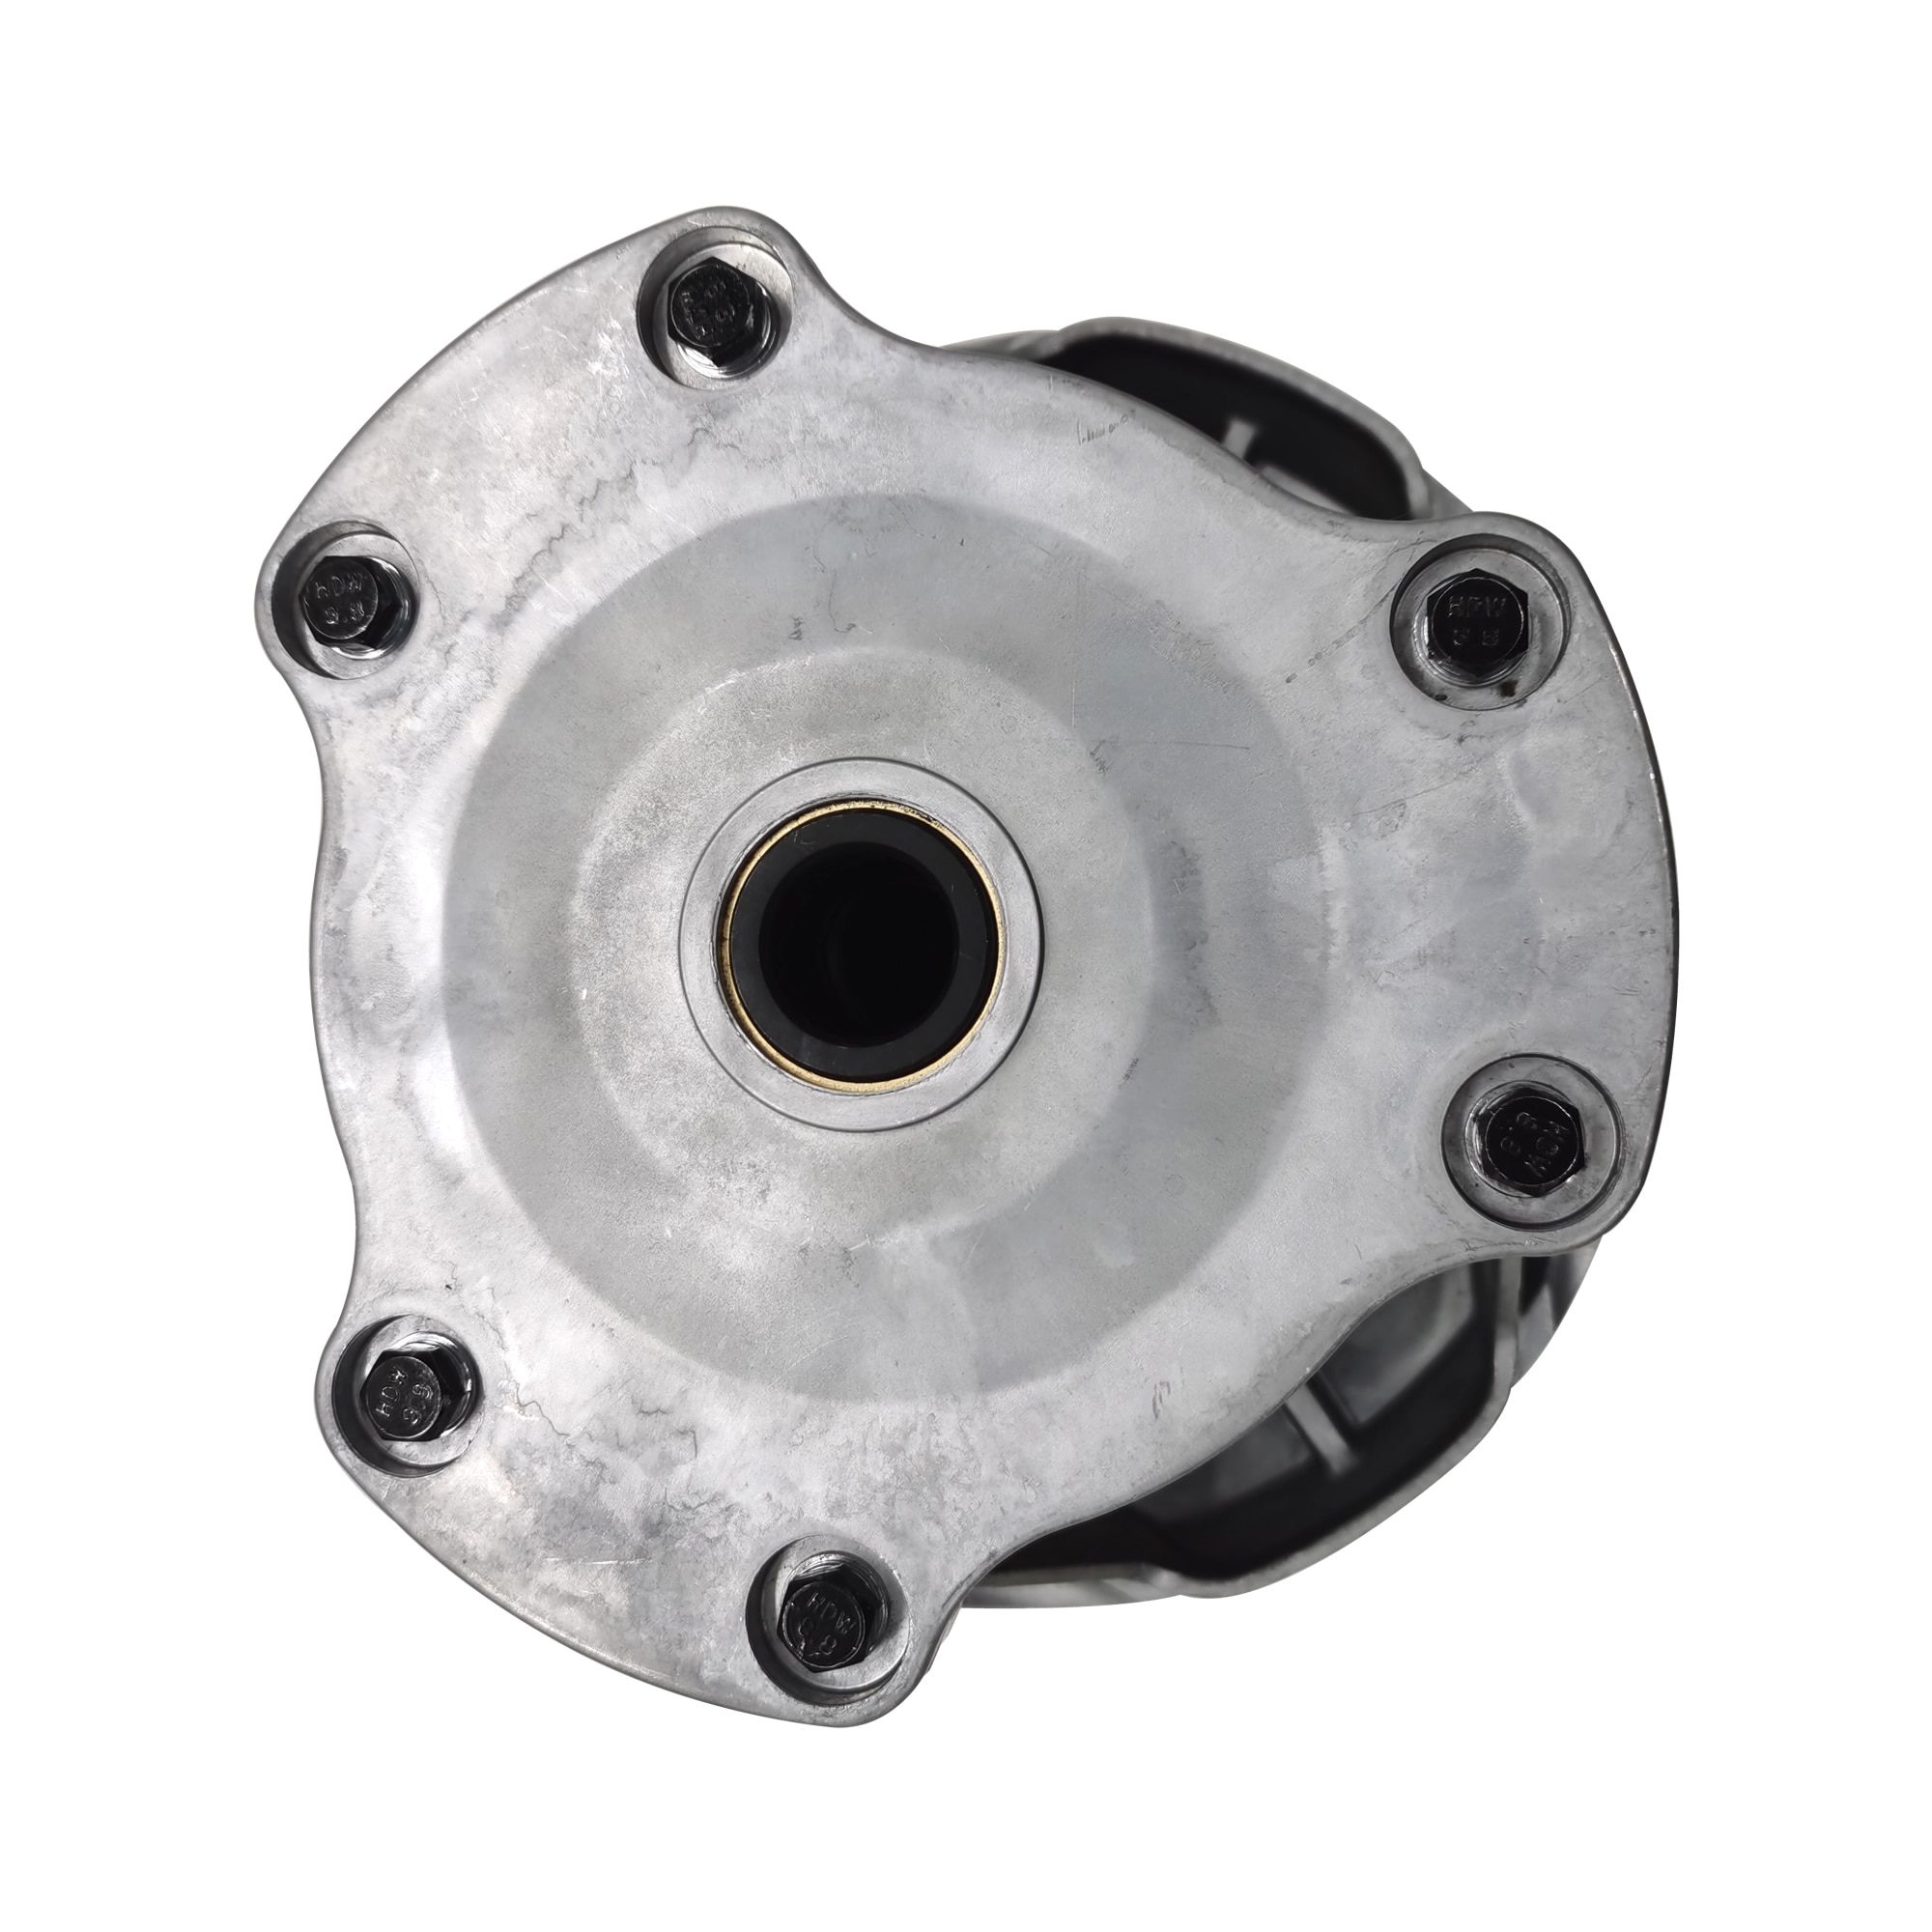 Primary Drive Clutch Replacement for 2010 2011 2012 2013 2014 Polaris RZR 800 RZR S 800 enlarge